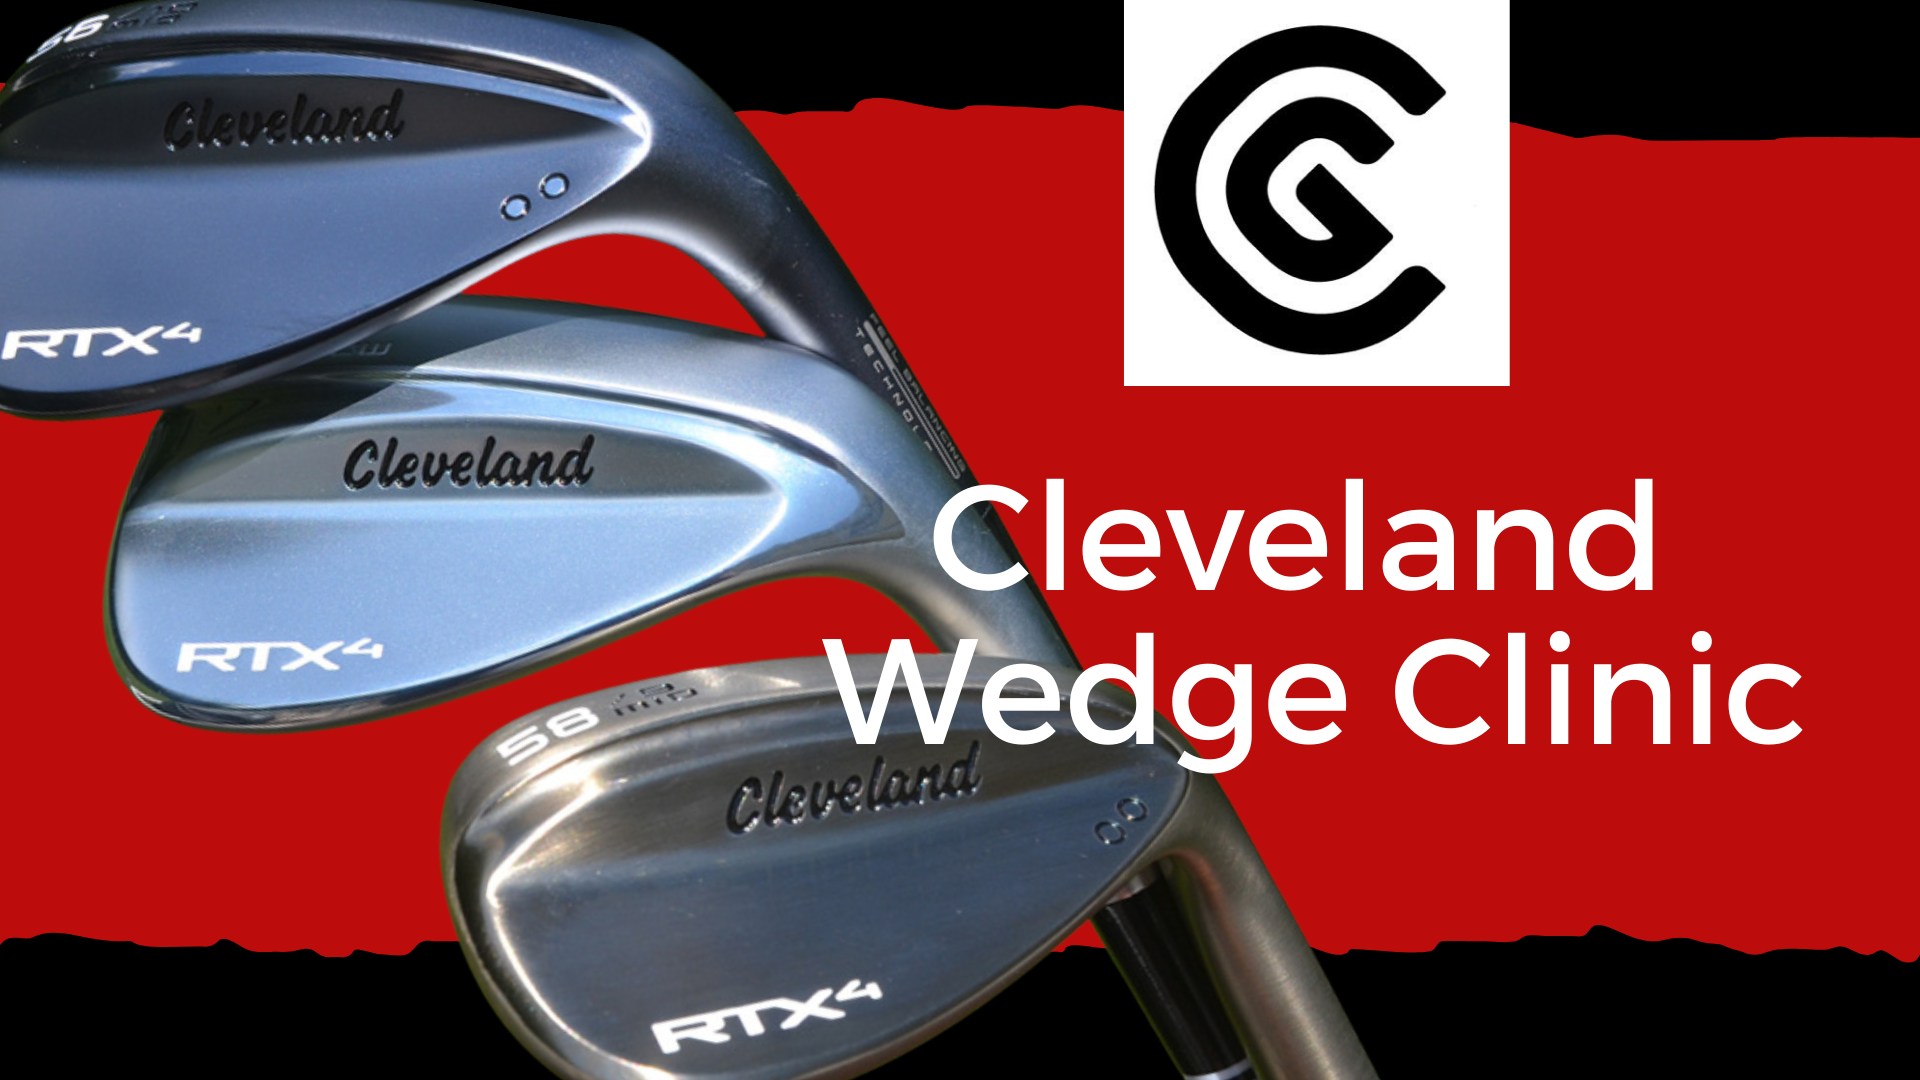 Cleveland Golf Wedge Clinic